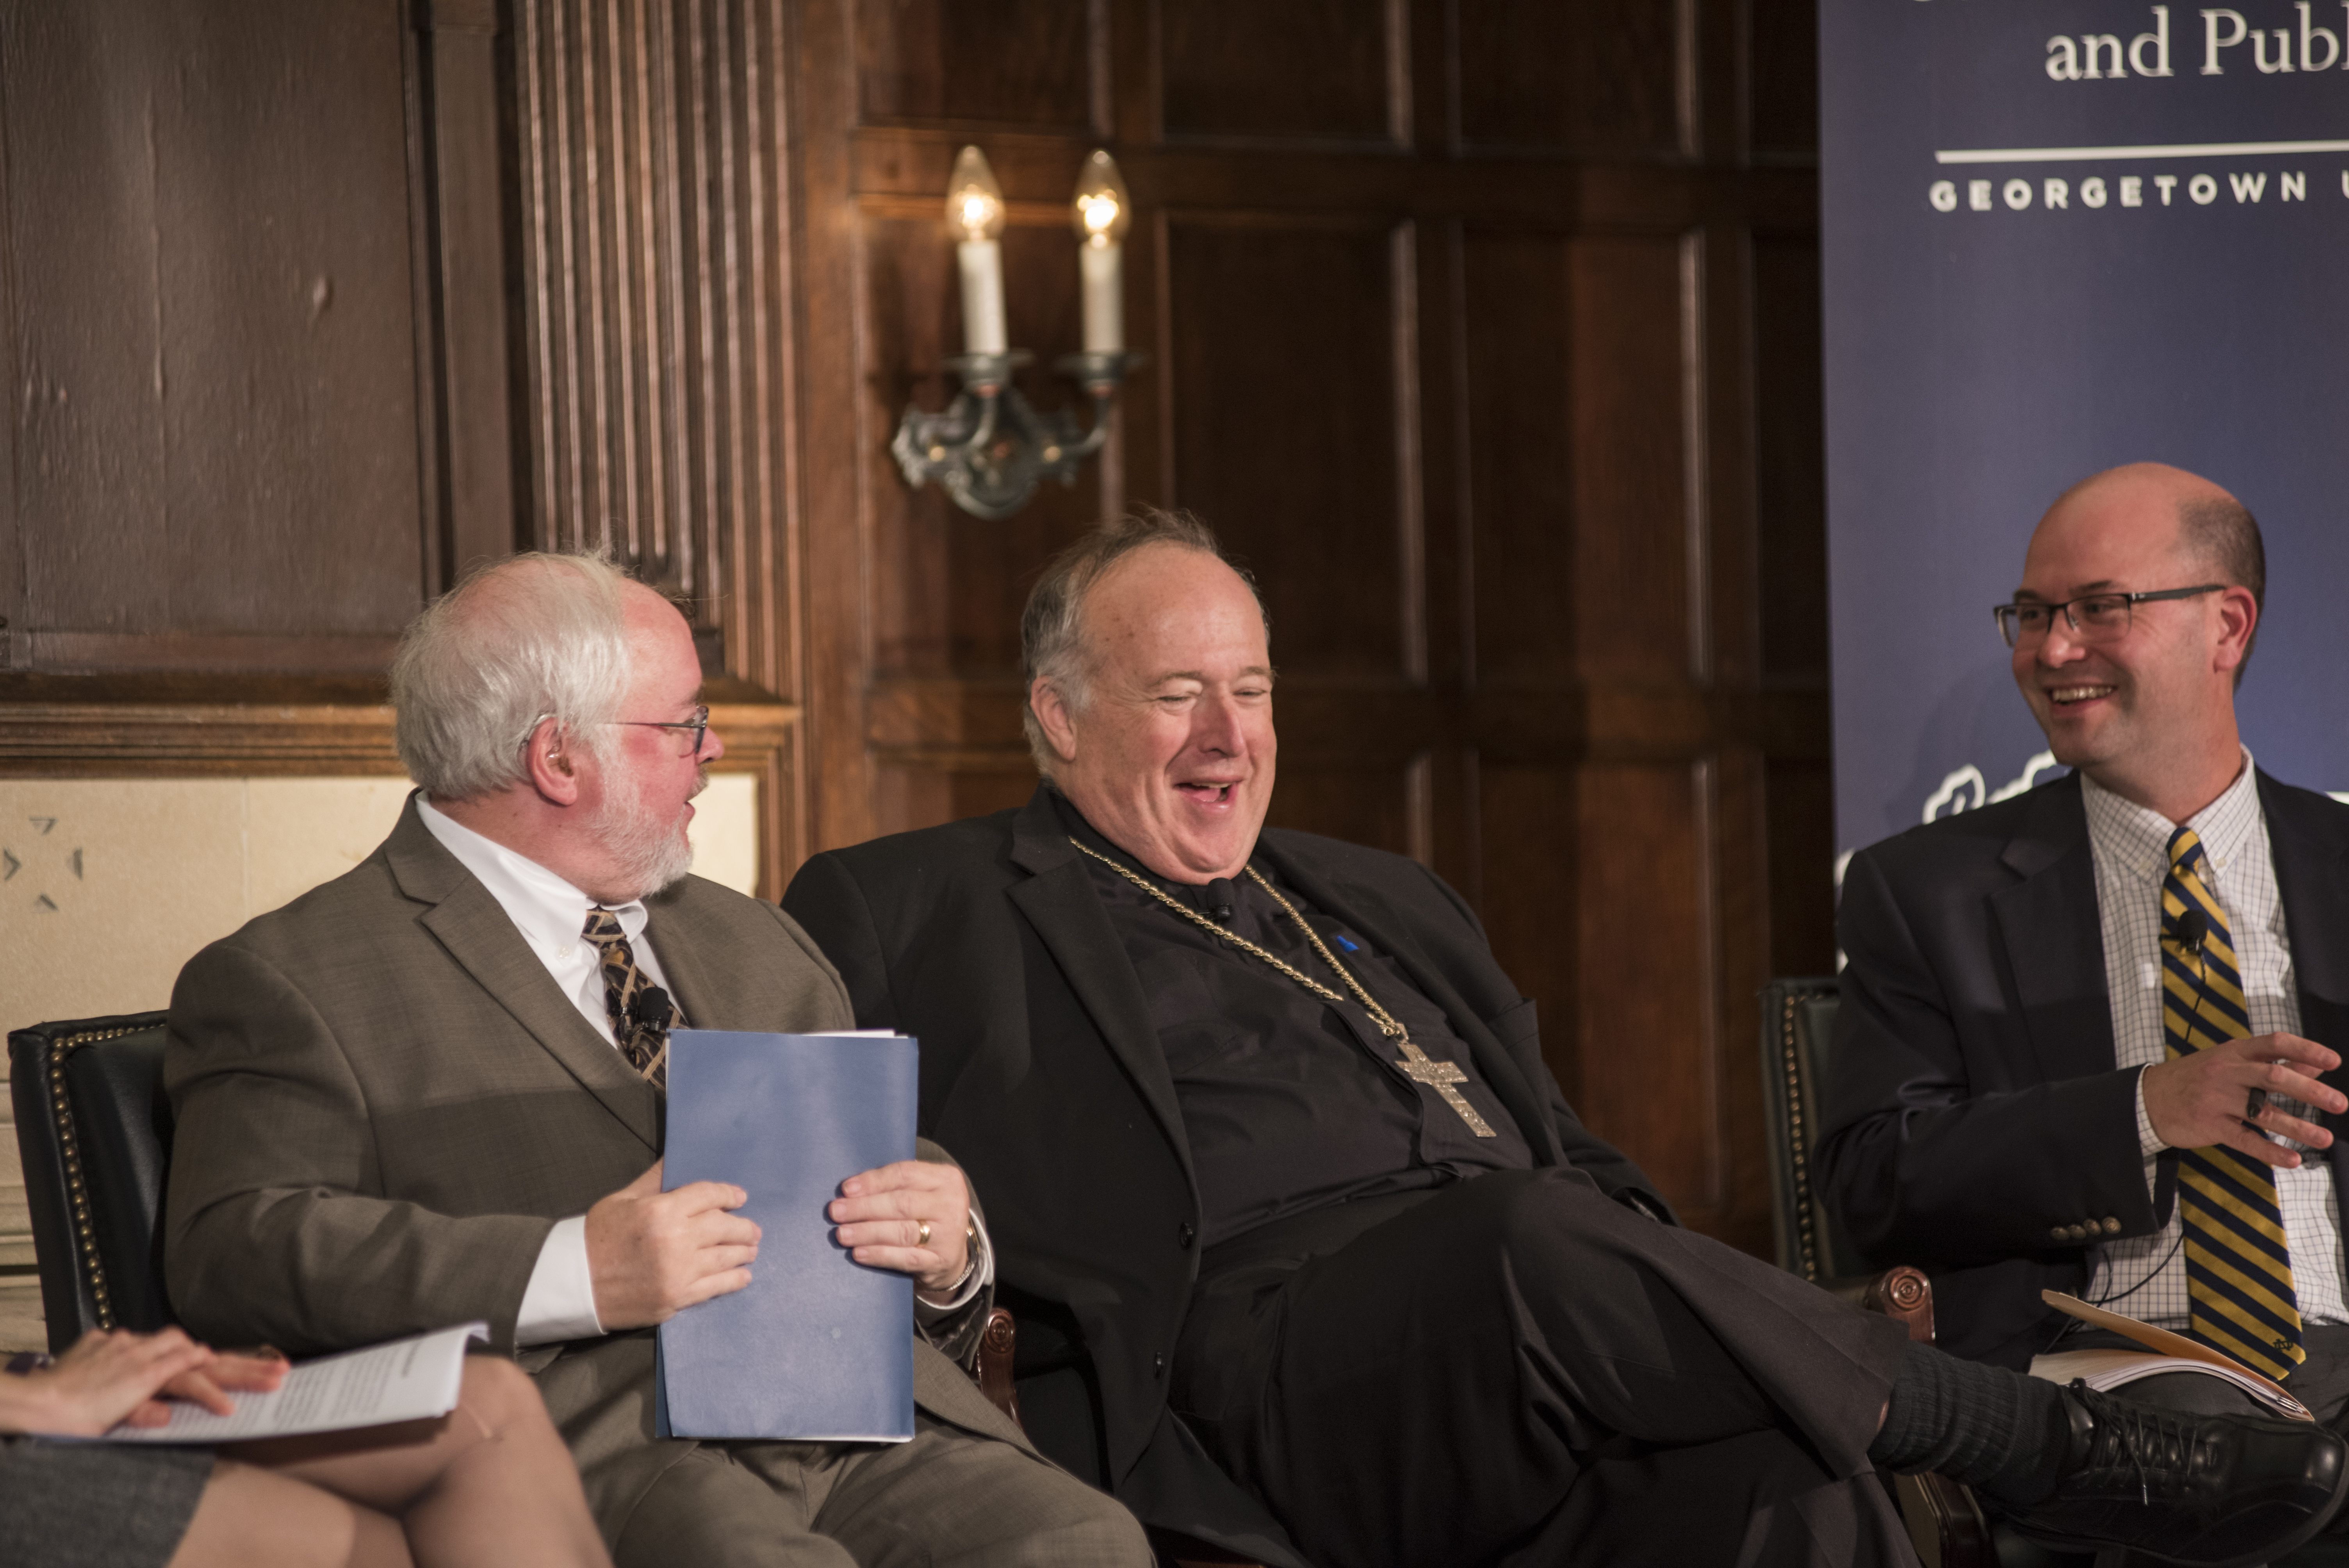 The panel shares a laugh during the conversation!